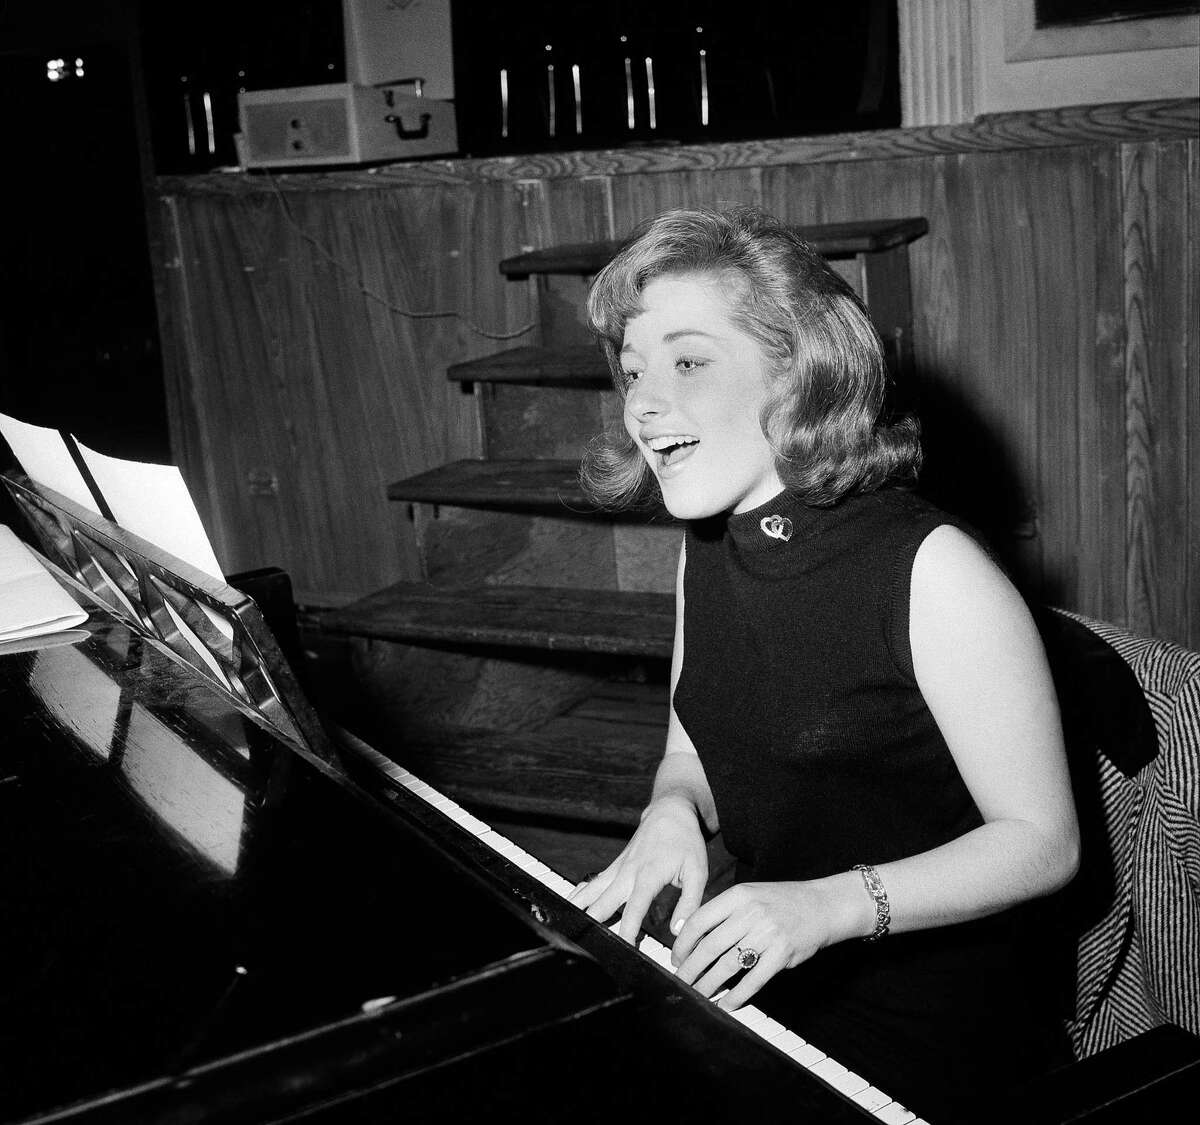 In this Jan. 5, 1966 file photo, singer Lesley Gore rehearses at a piano, in New York.